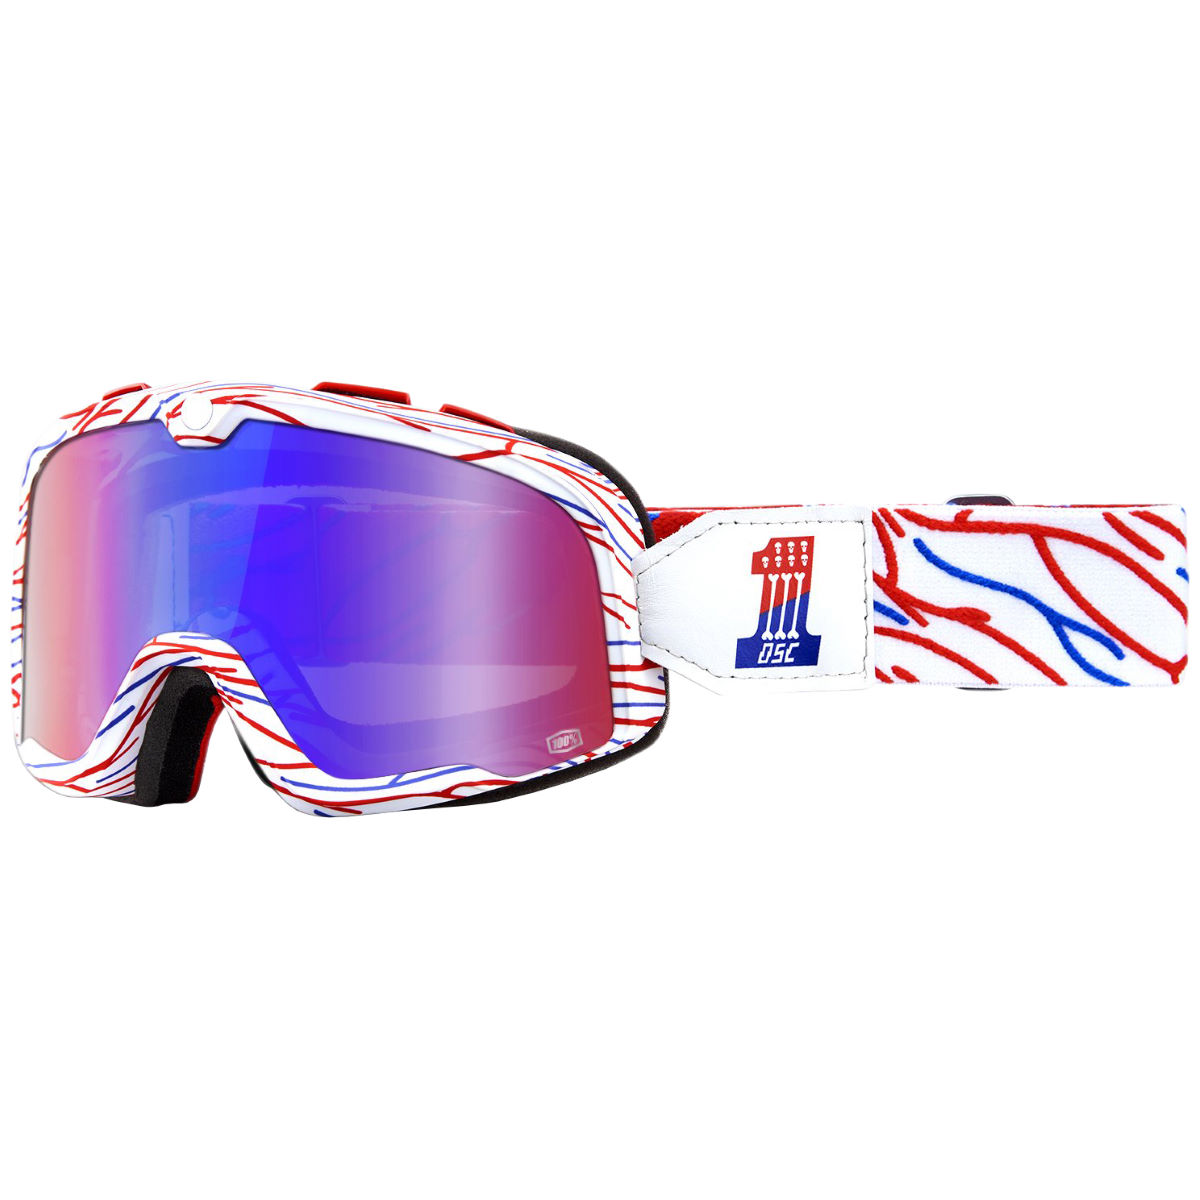 100% Barstow Goggles - One Size Death Spray Customs  Cycling Goggles